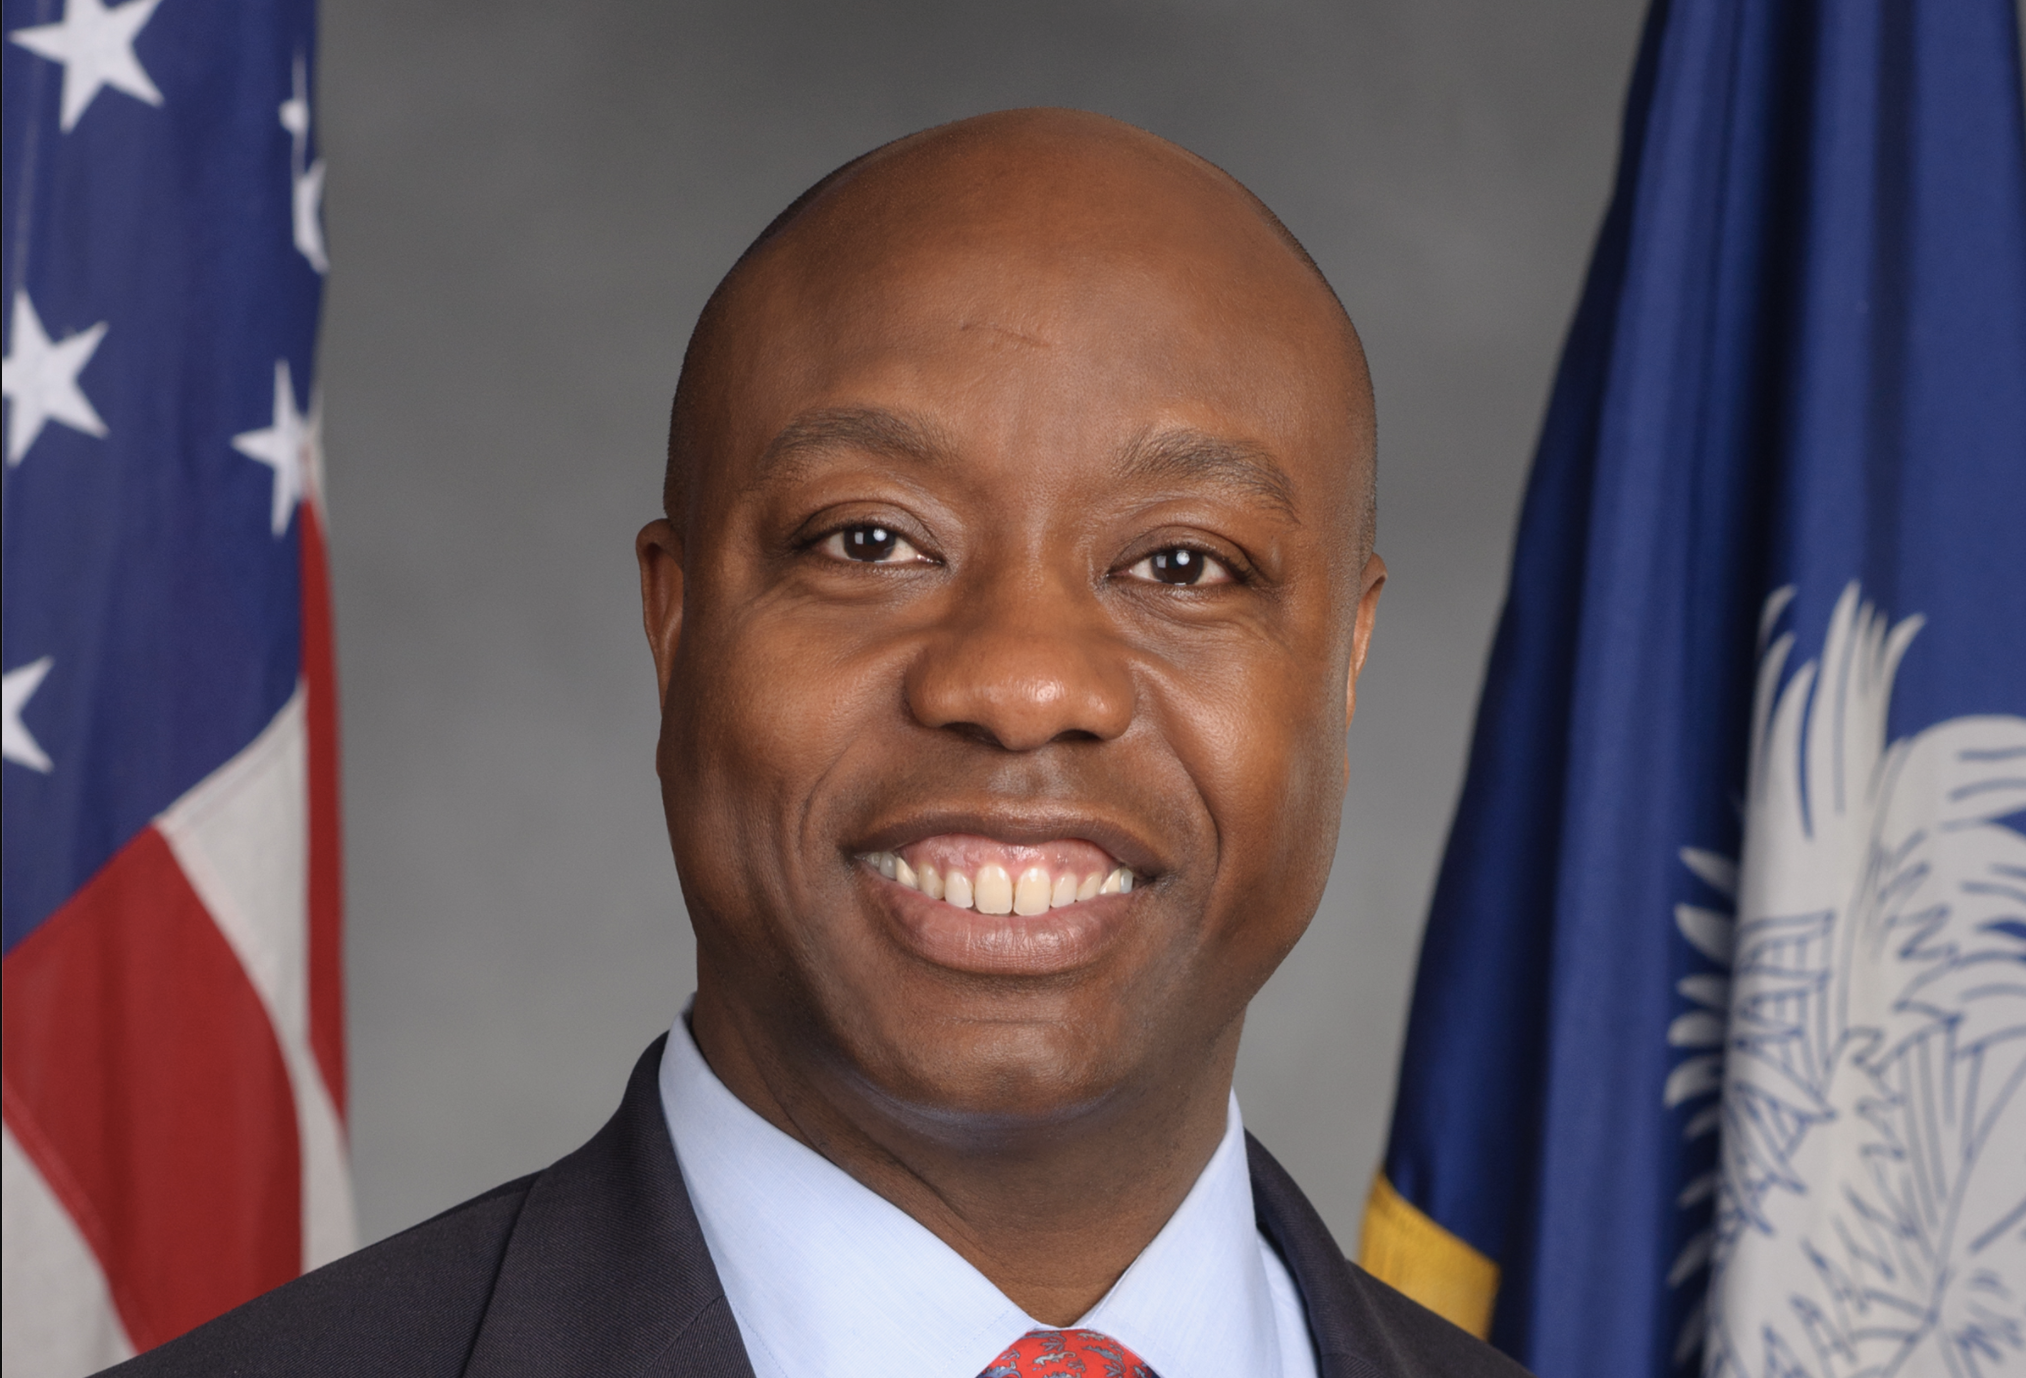 U.S. Sen. Tim Scott (R-SC) is co-sponsor of legislation to overturn a Consumer Financial Protection Bureau rule that prohibits class-action waivers in virtually all financial consumer-service agreements